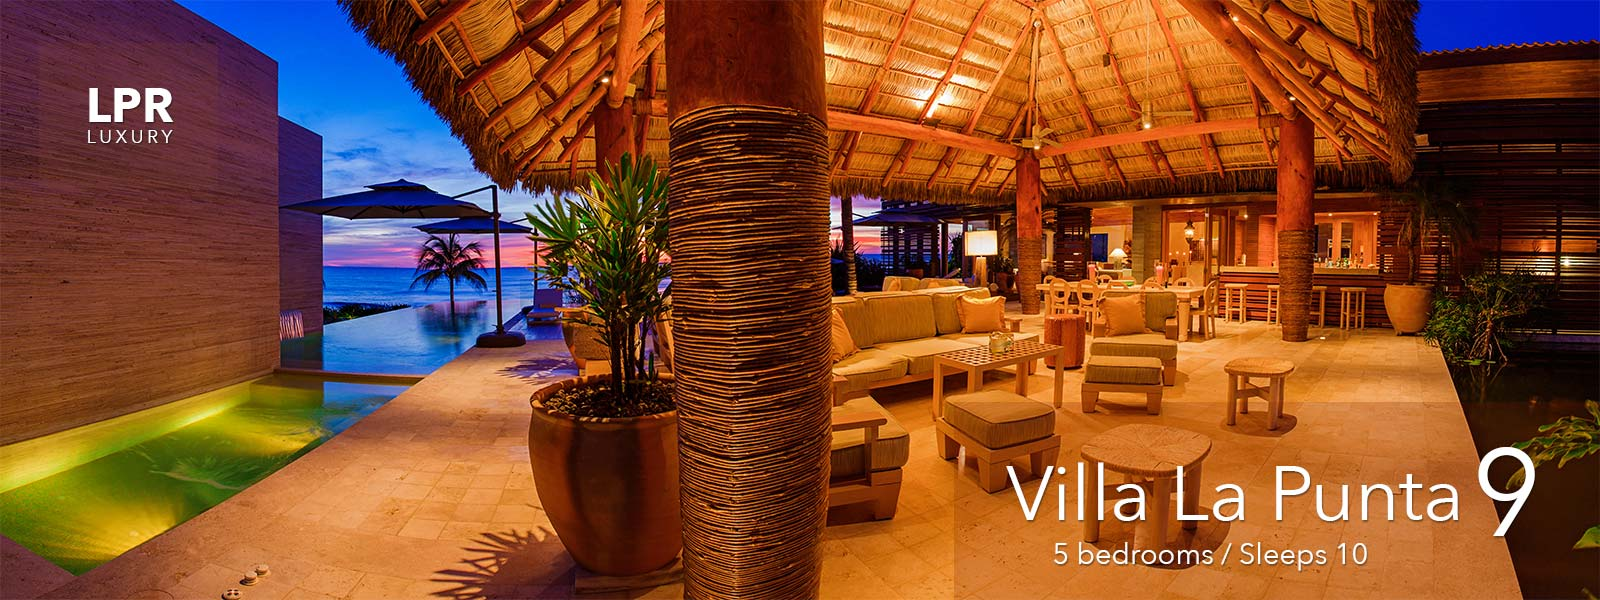 villa la punta 9 - luxury punta mita real estate and vacation rentals